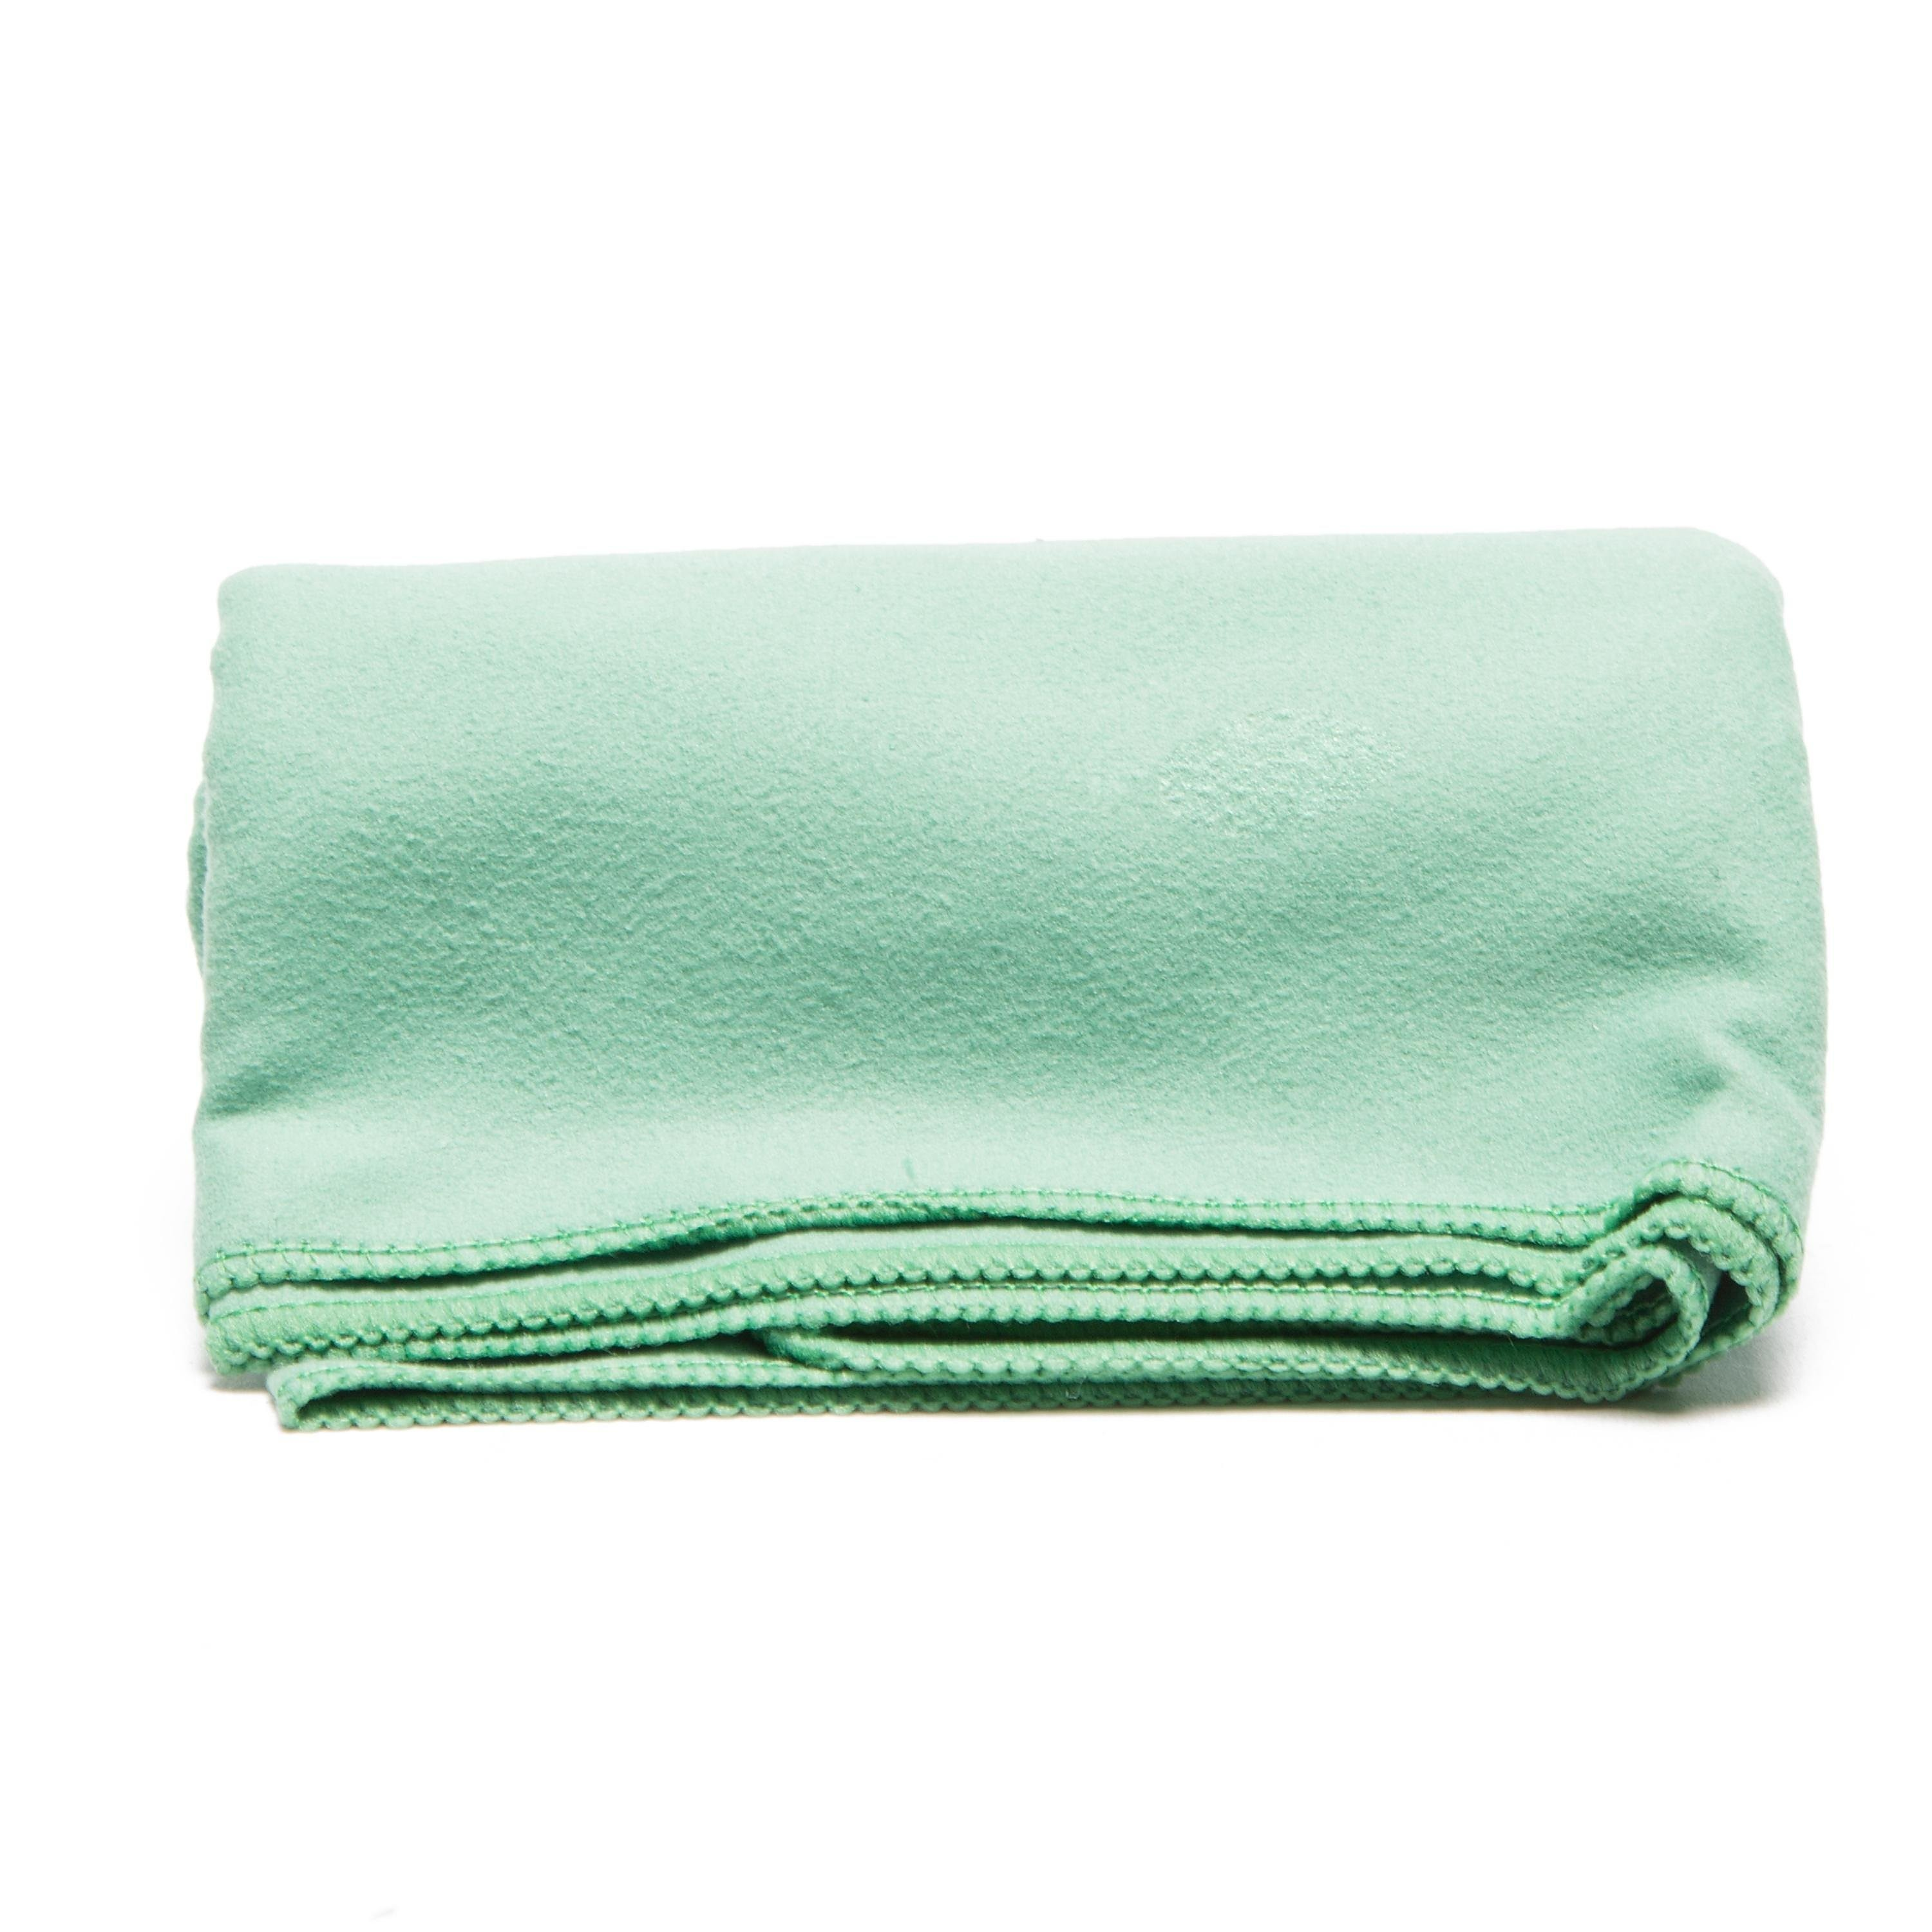 EUROHIKE Suede Microfibre Travel Towel - Small